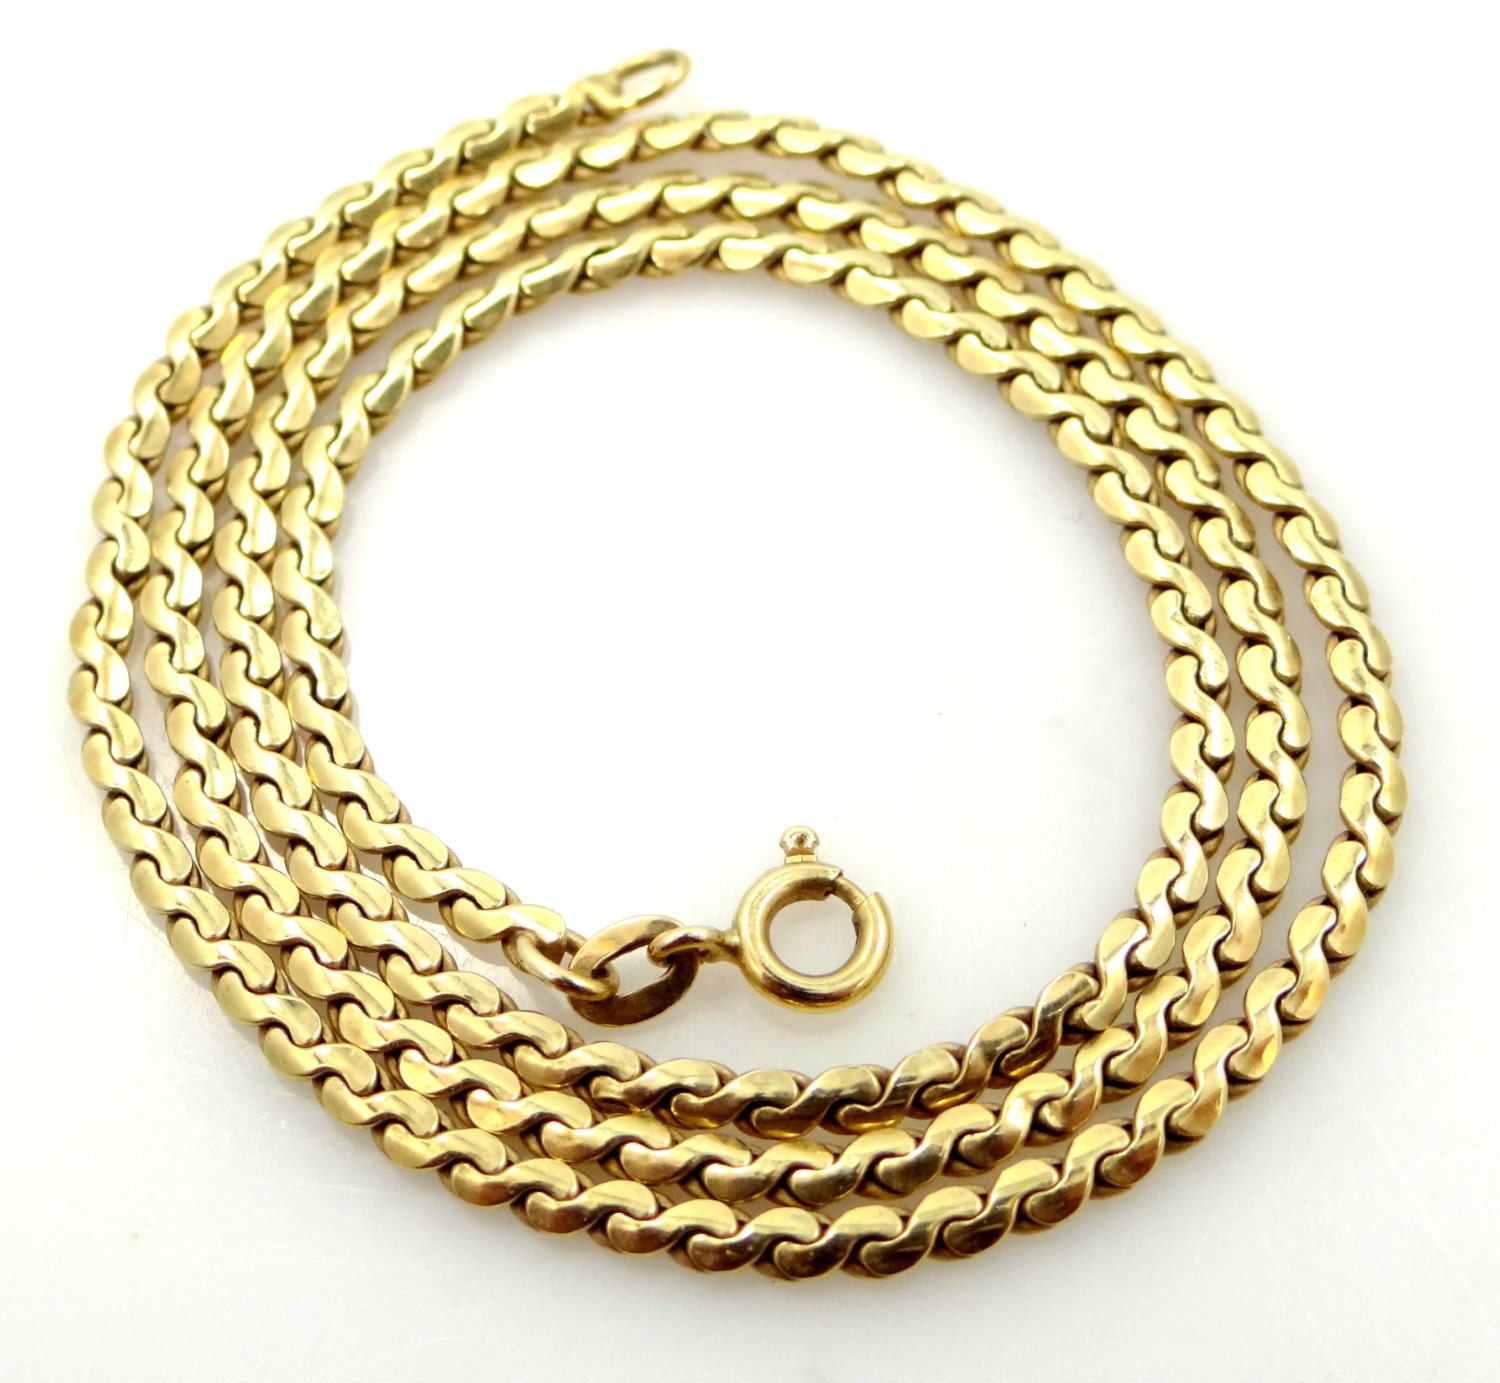 14k Solid Gold THICK Serpentine Necklace or Chain  14k Solid Gold ...